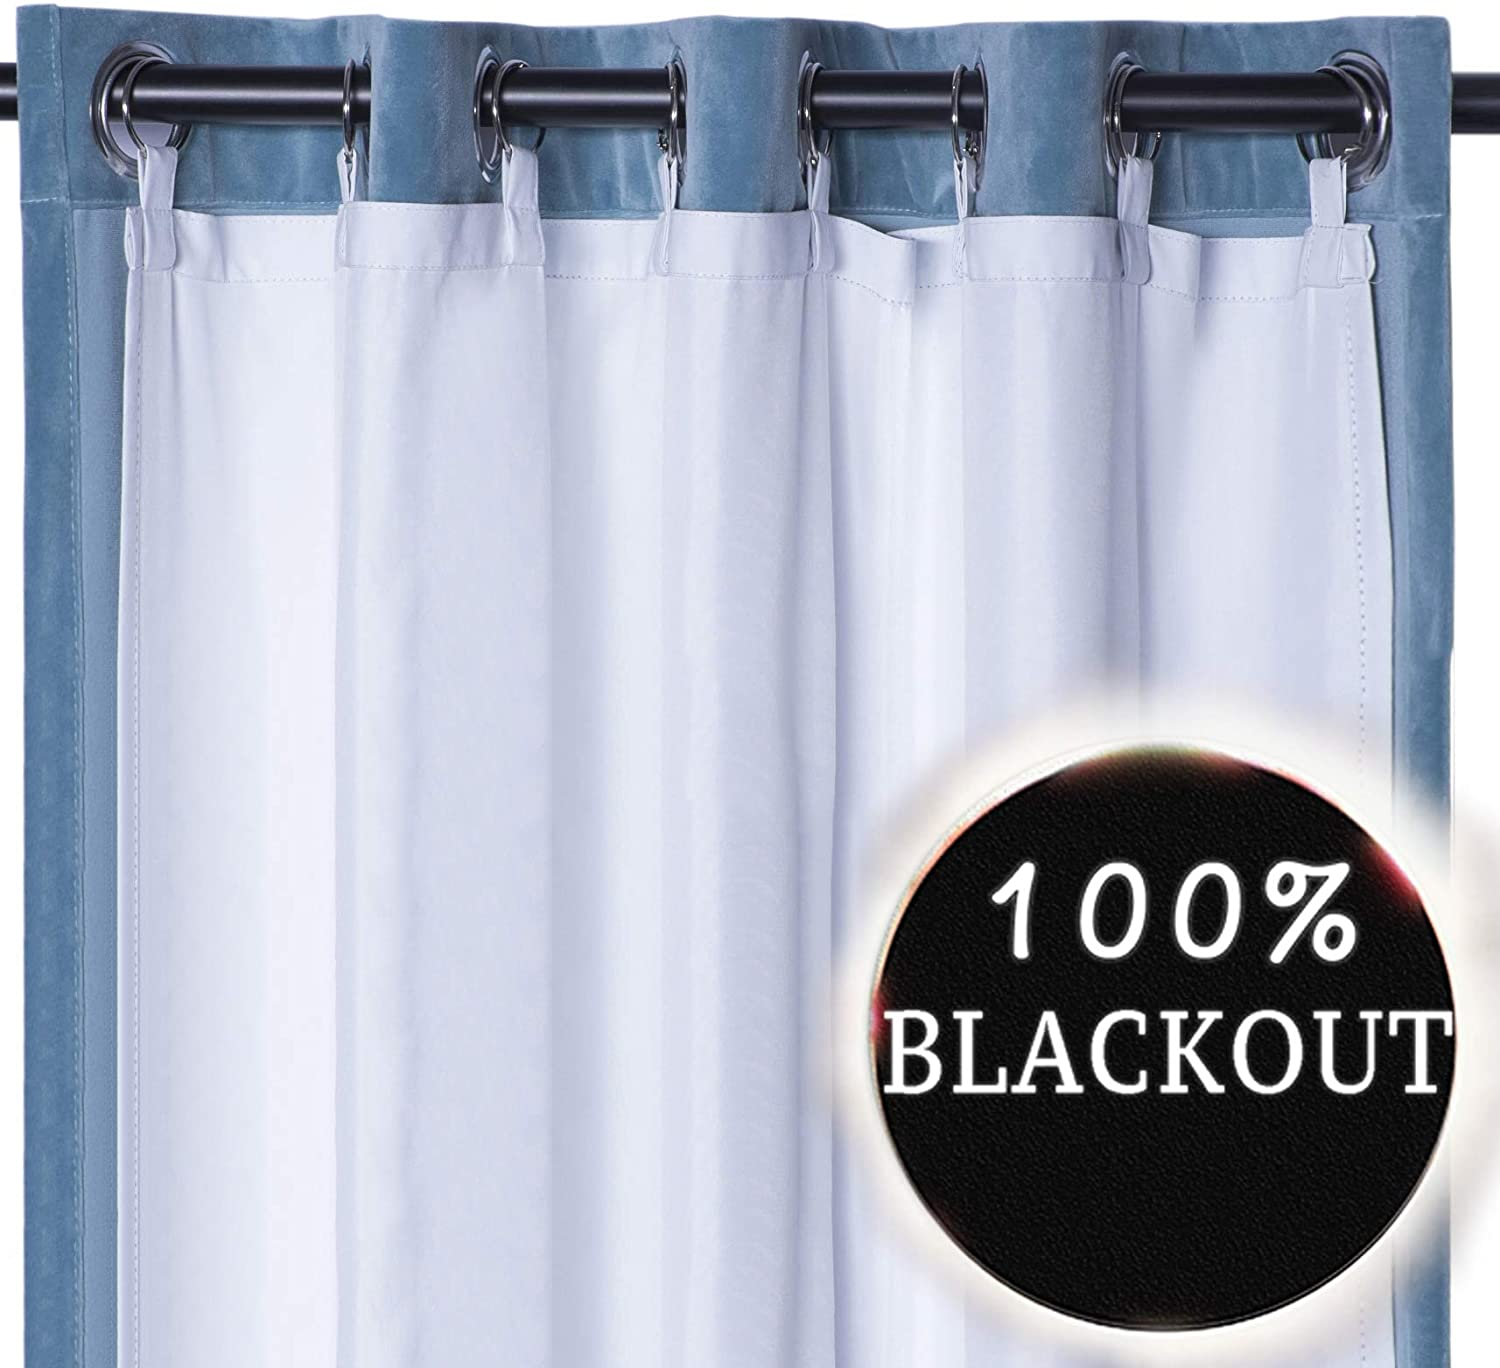 120 Blackout Curtain Liner Oh Decor Curtain